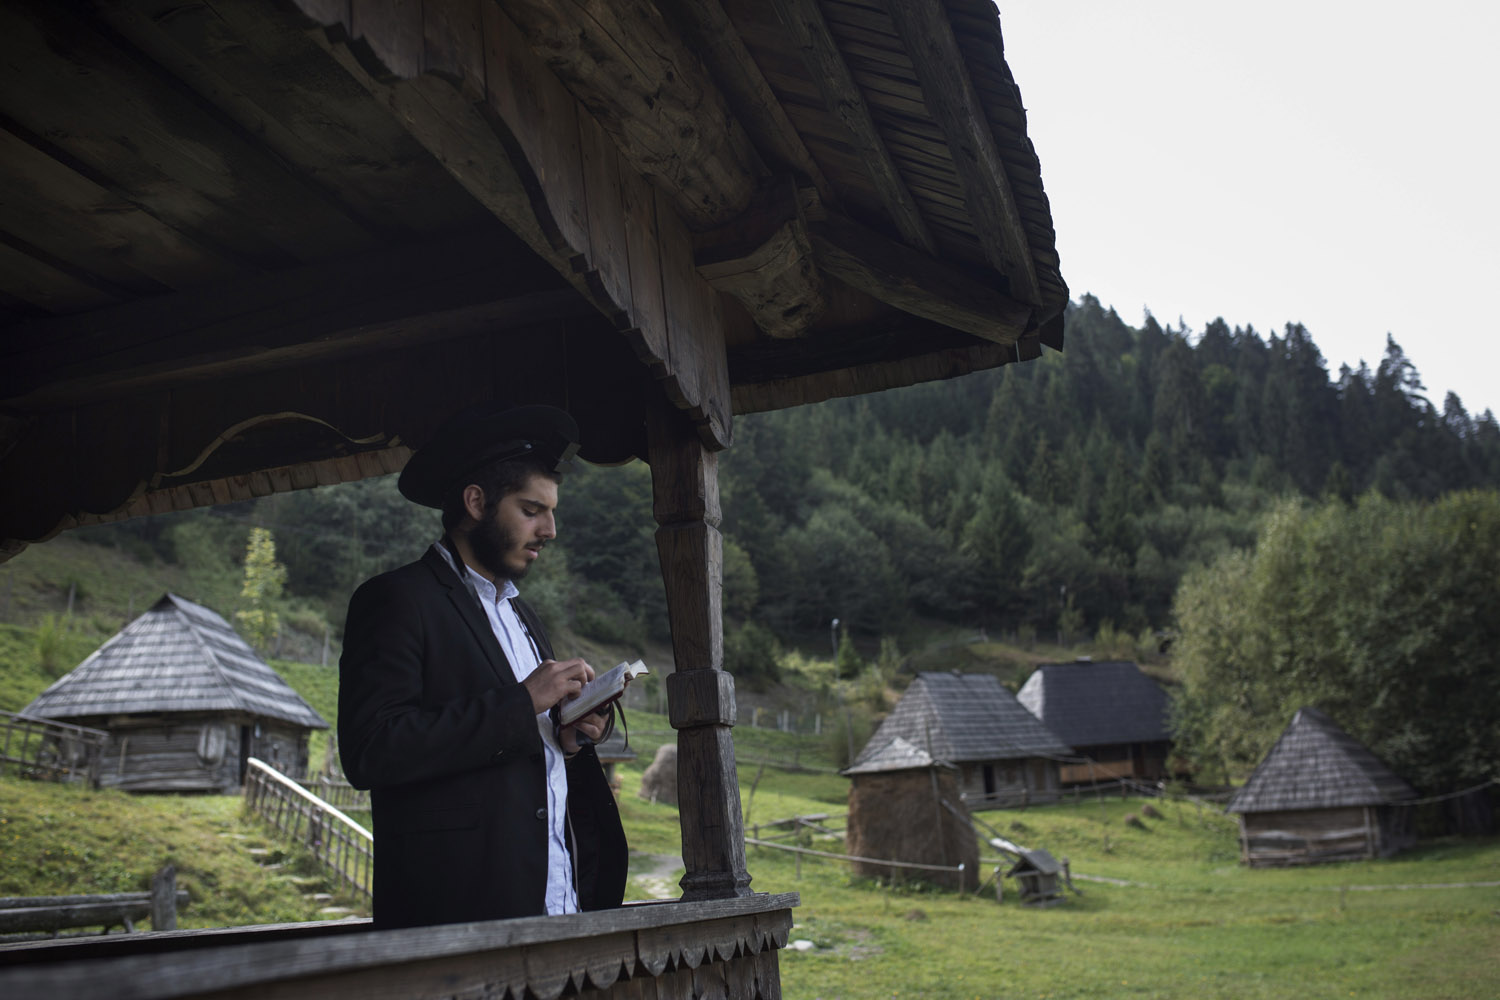 A religious Jew prays his morning prayer in Kolochava. He has been sent to help the local rabbi during holidays by Chabad, a Jewish religious organization whose mission is to bring Jews together and closer to God.